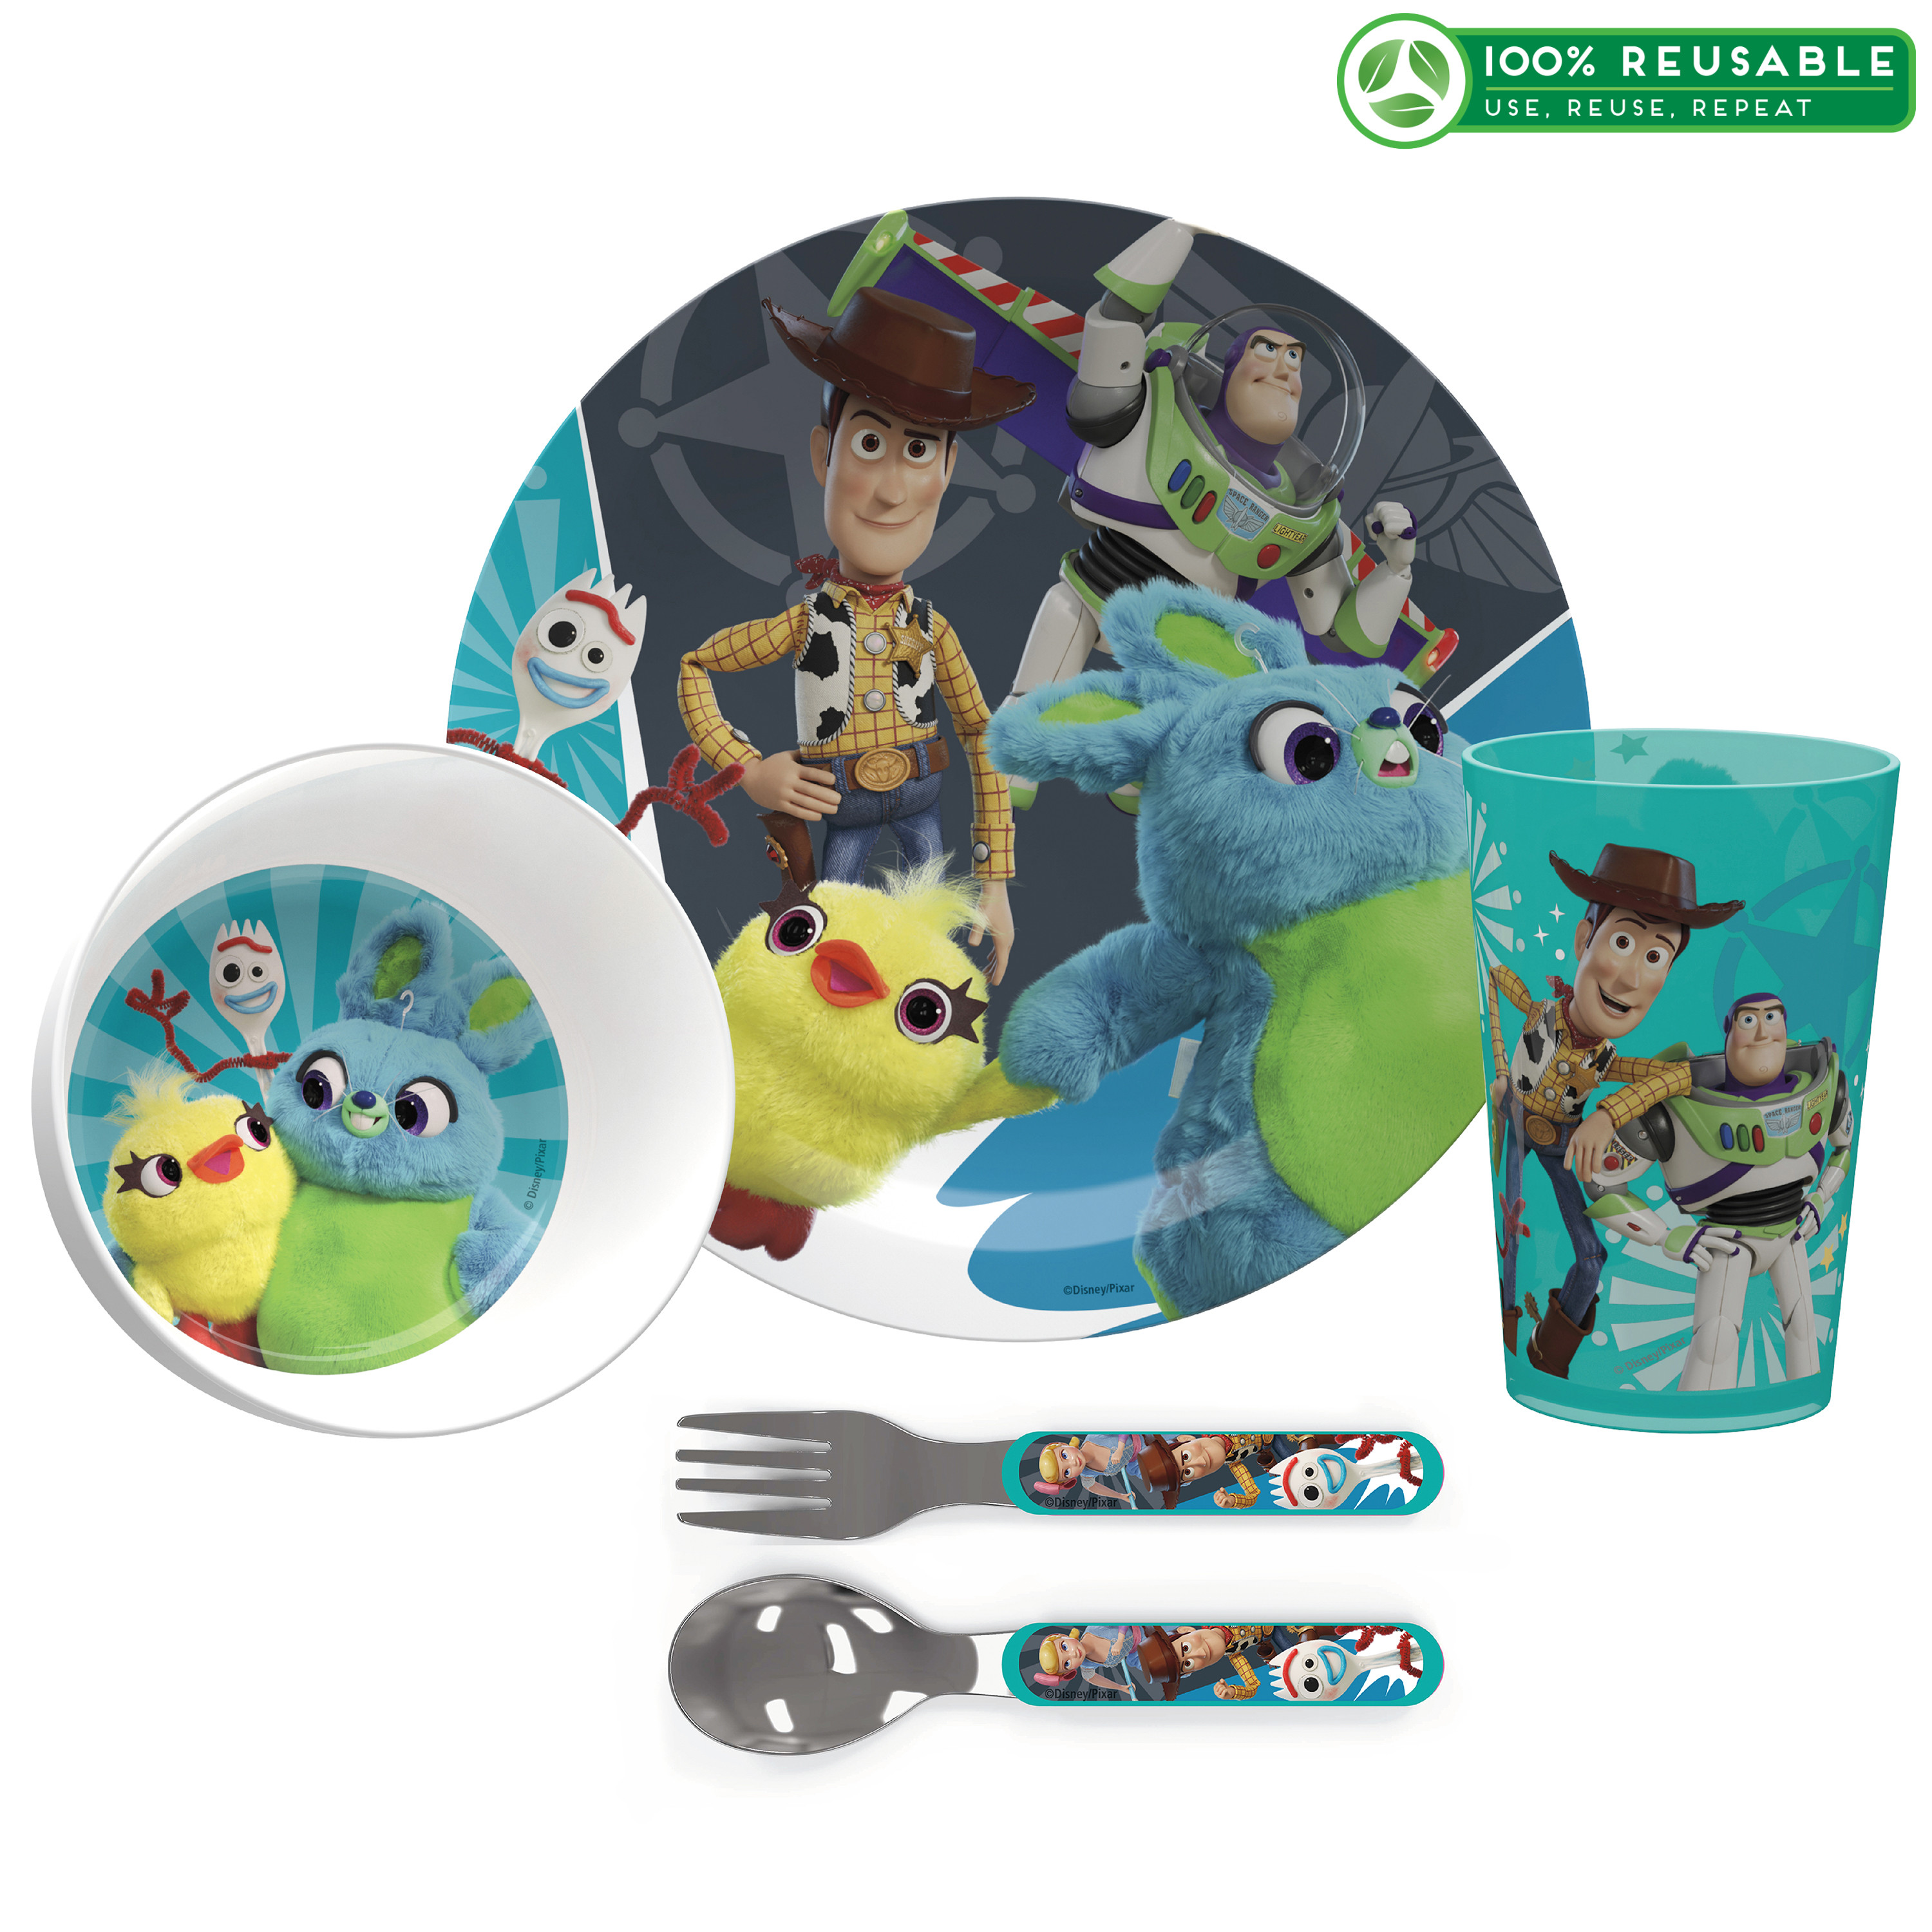 Disney Pixar Dinnerware Set, Woody, Buzz and Friends, 5-piece set slideshow image 1